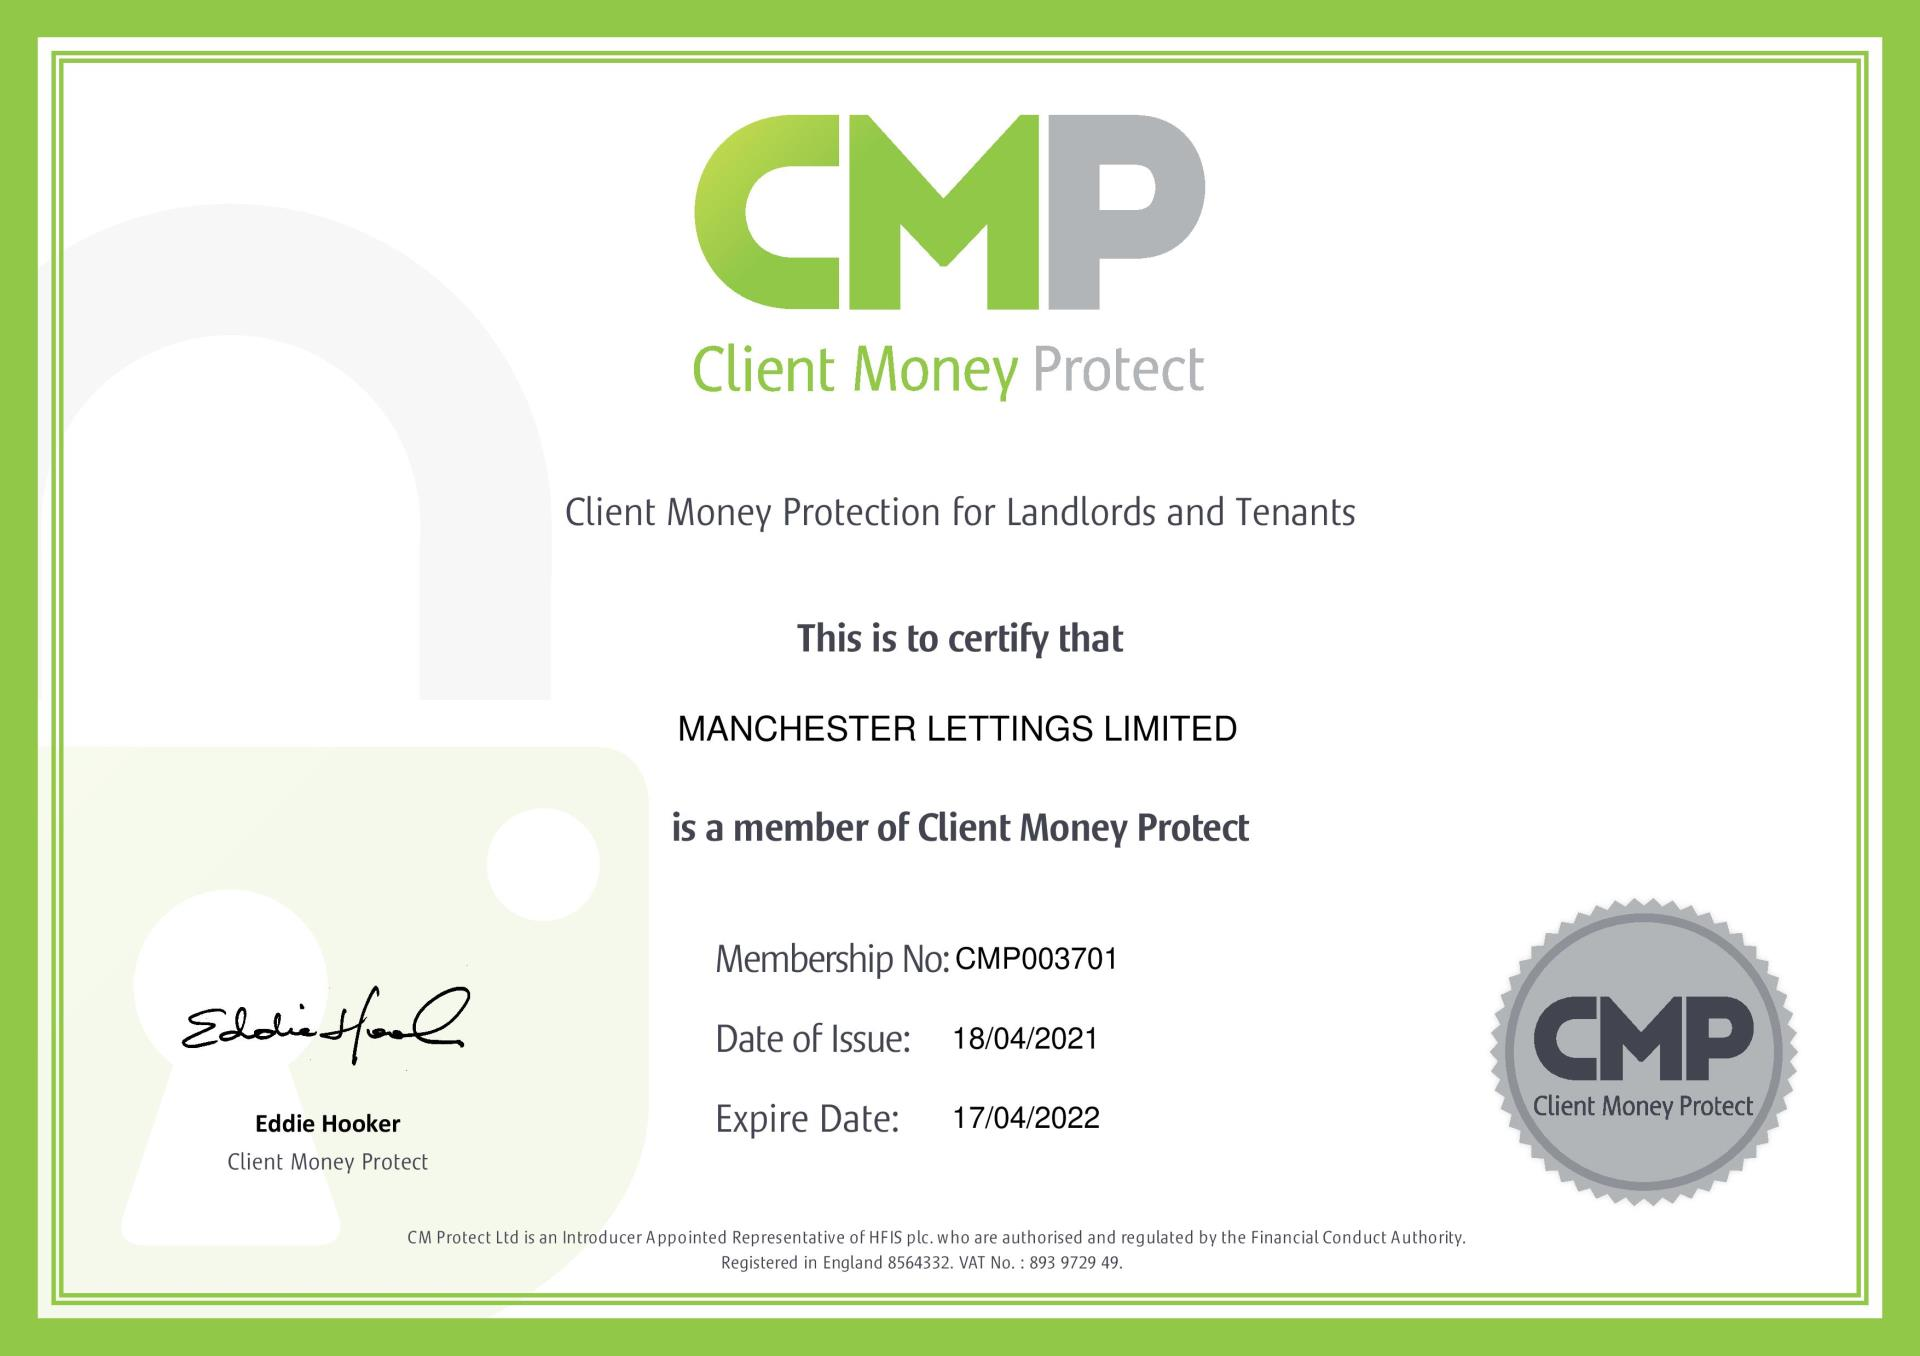 Manchester Lettings Ltd - Client Money Protection Certificate